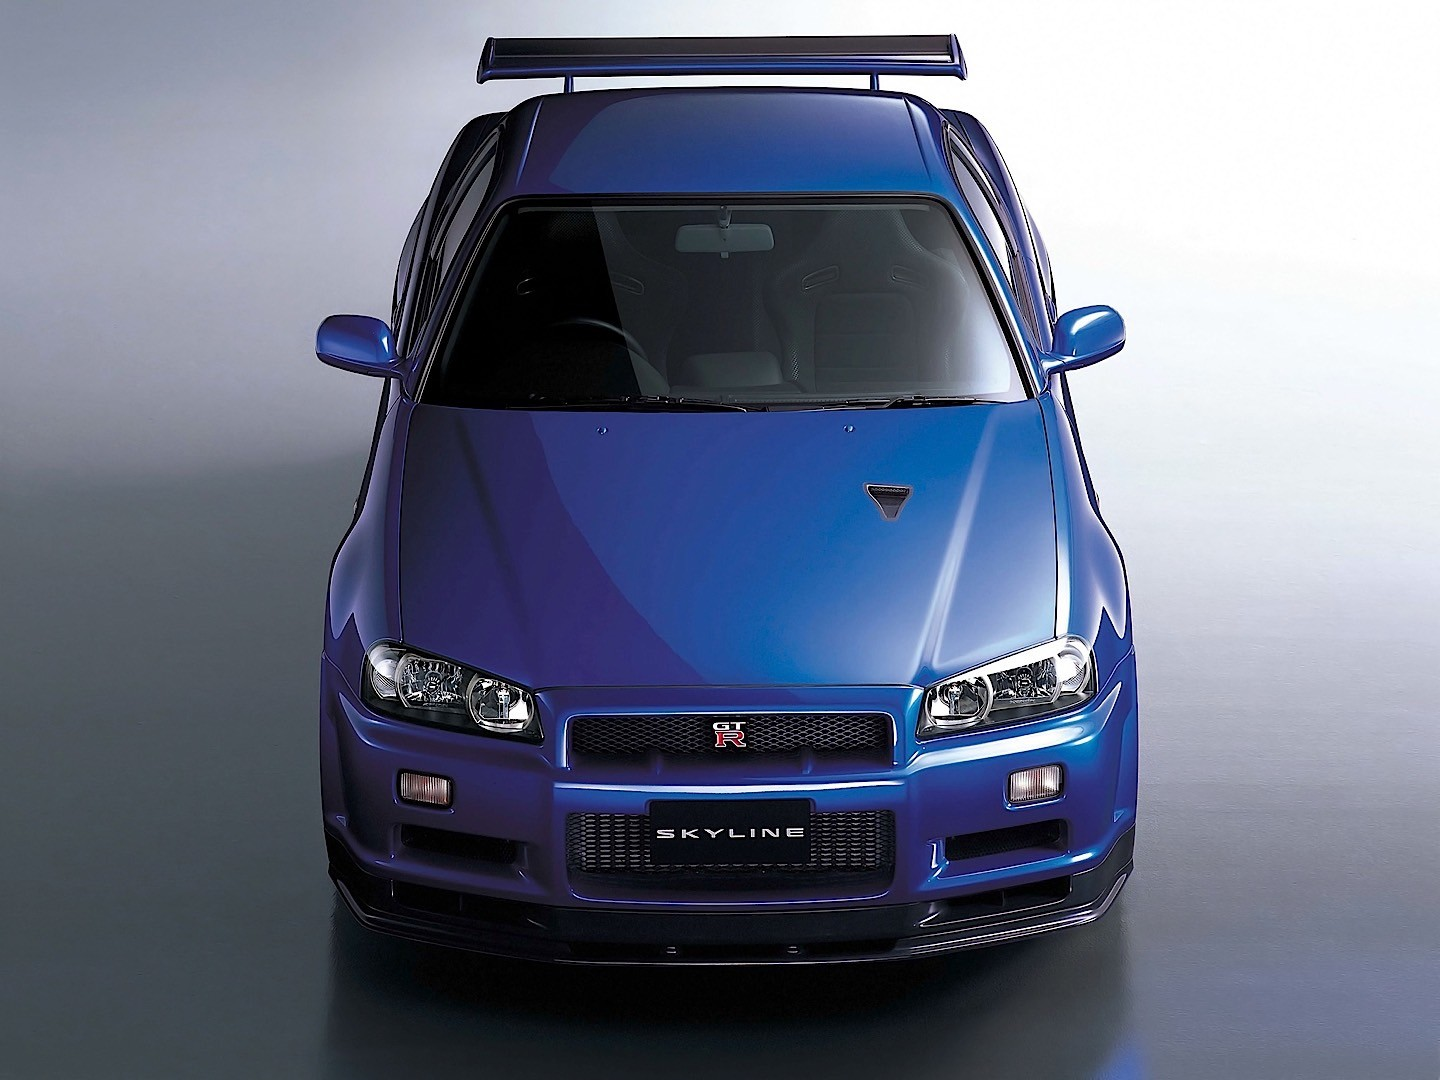 Show Me Your Favorite Hood Scoops Vents Naca Ducts Etc Cars